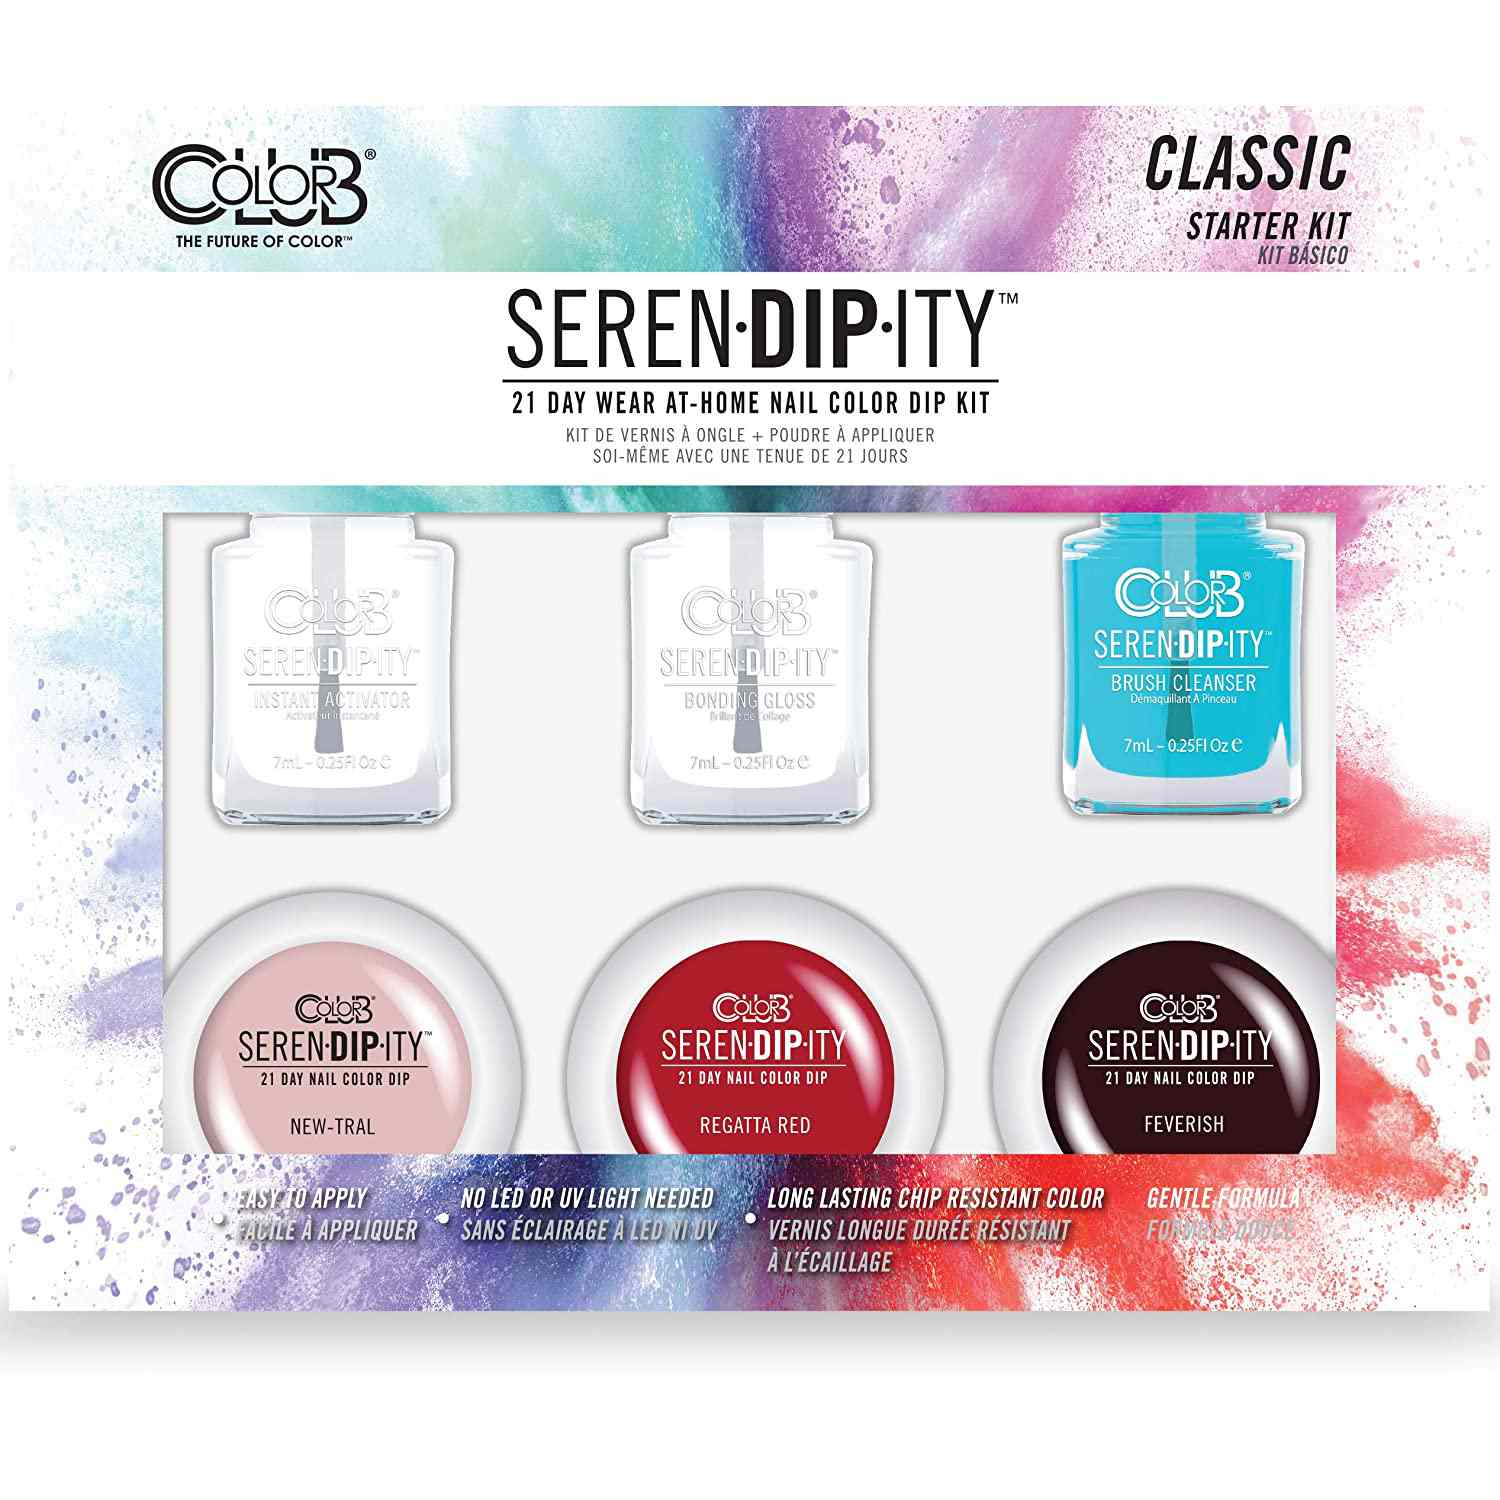 Color Club Serendipity 21 Day Wear At Home Nail Color Dip Kit